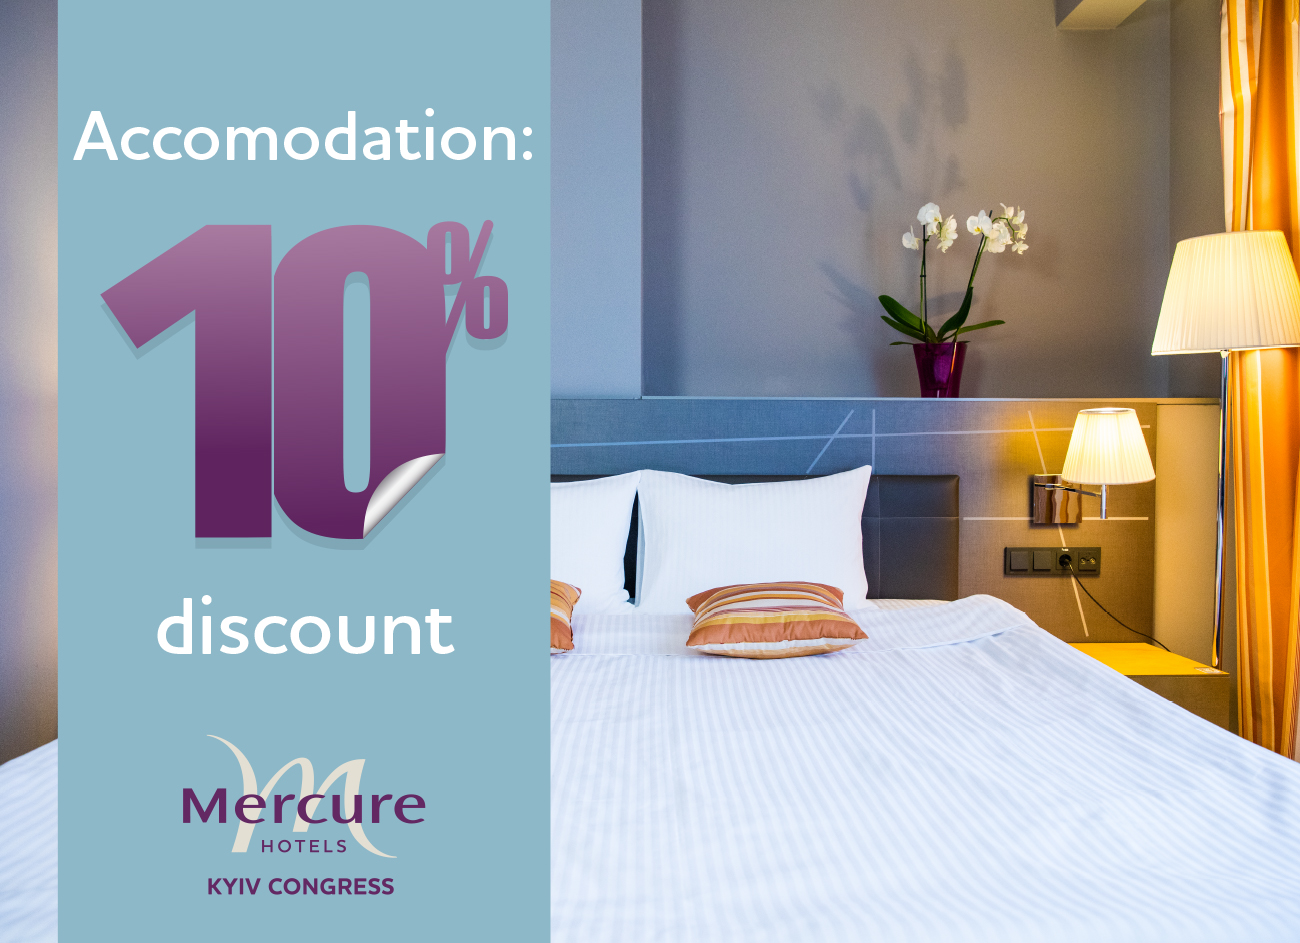 Special March offer by Mercure